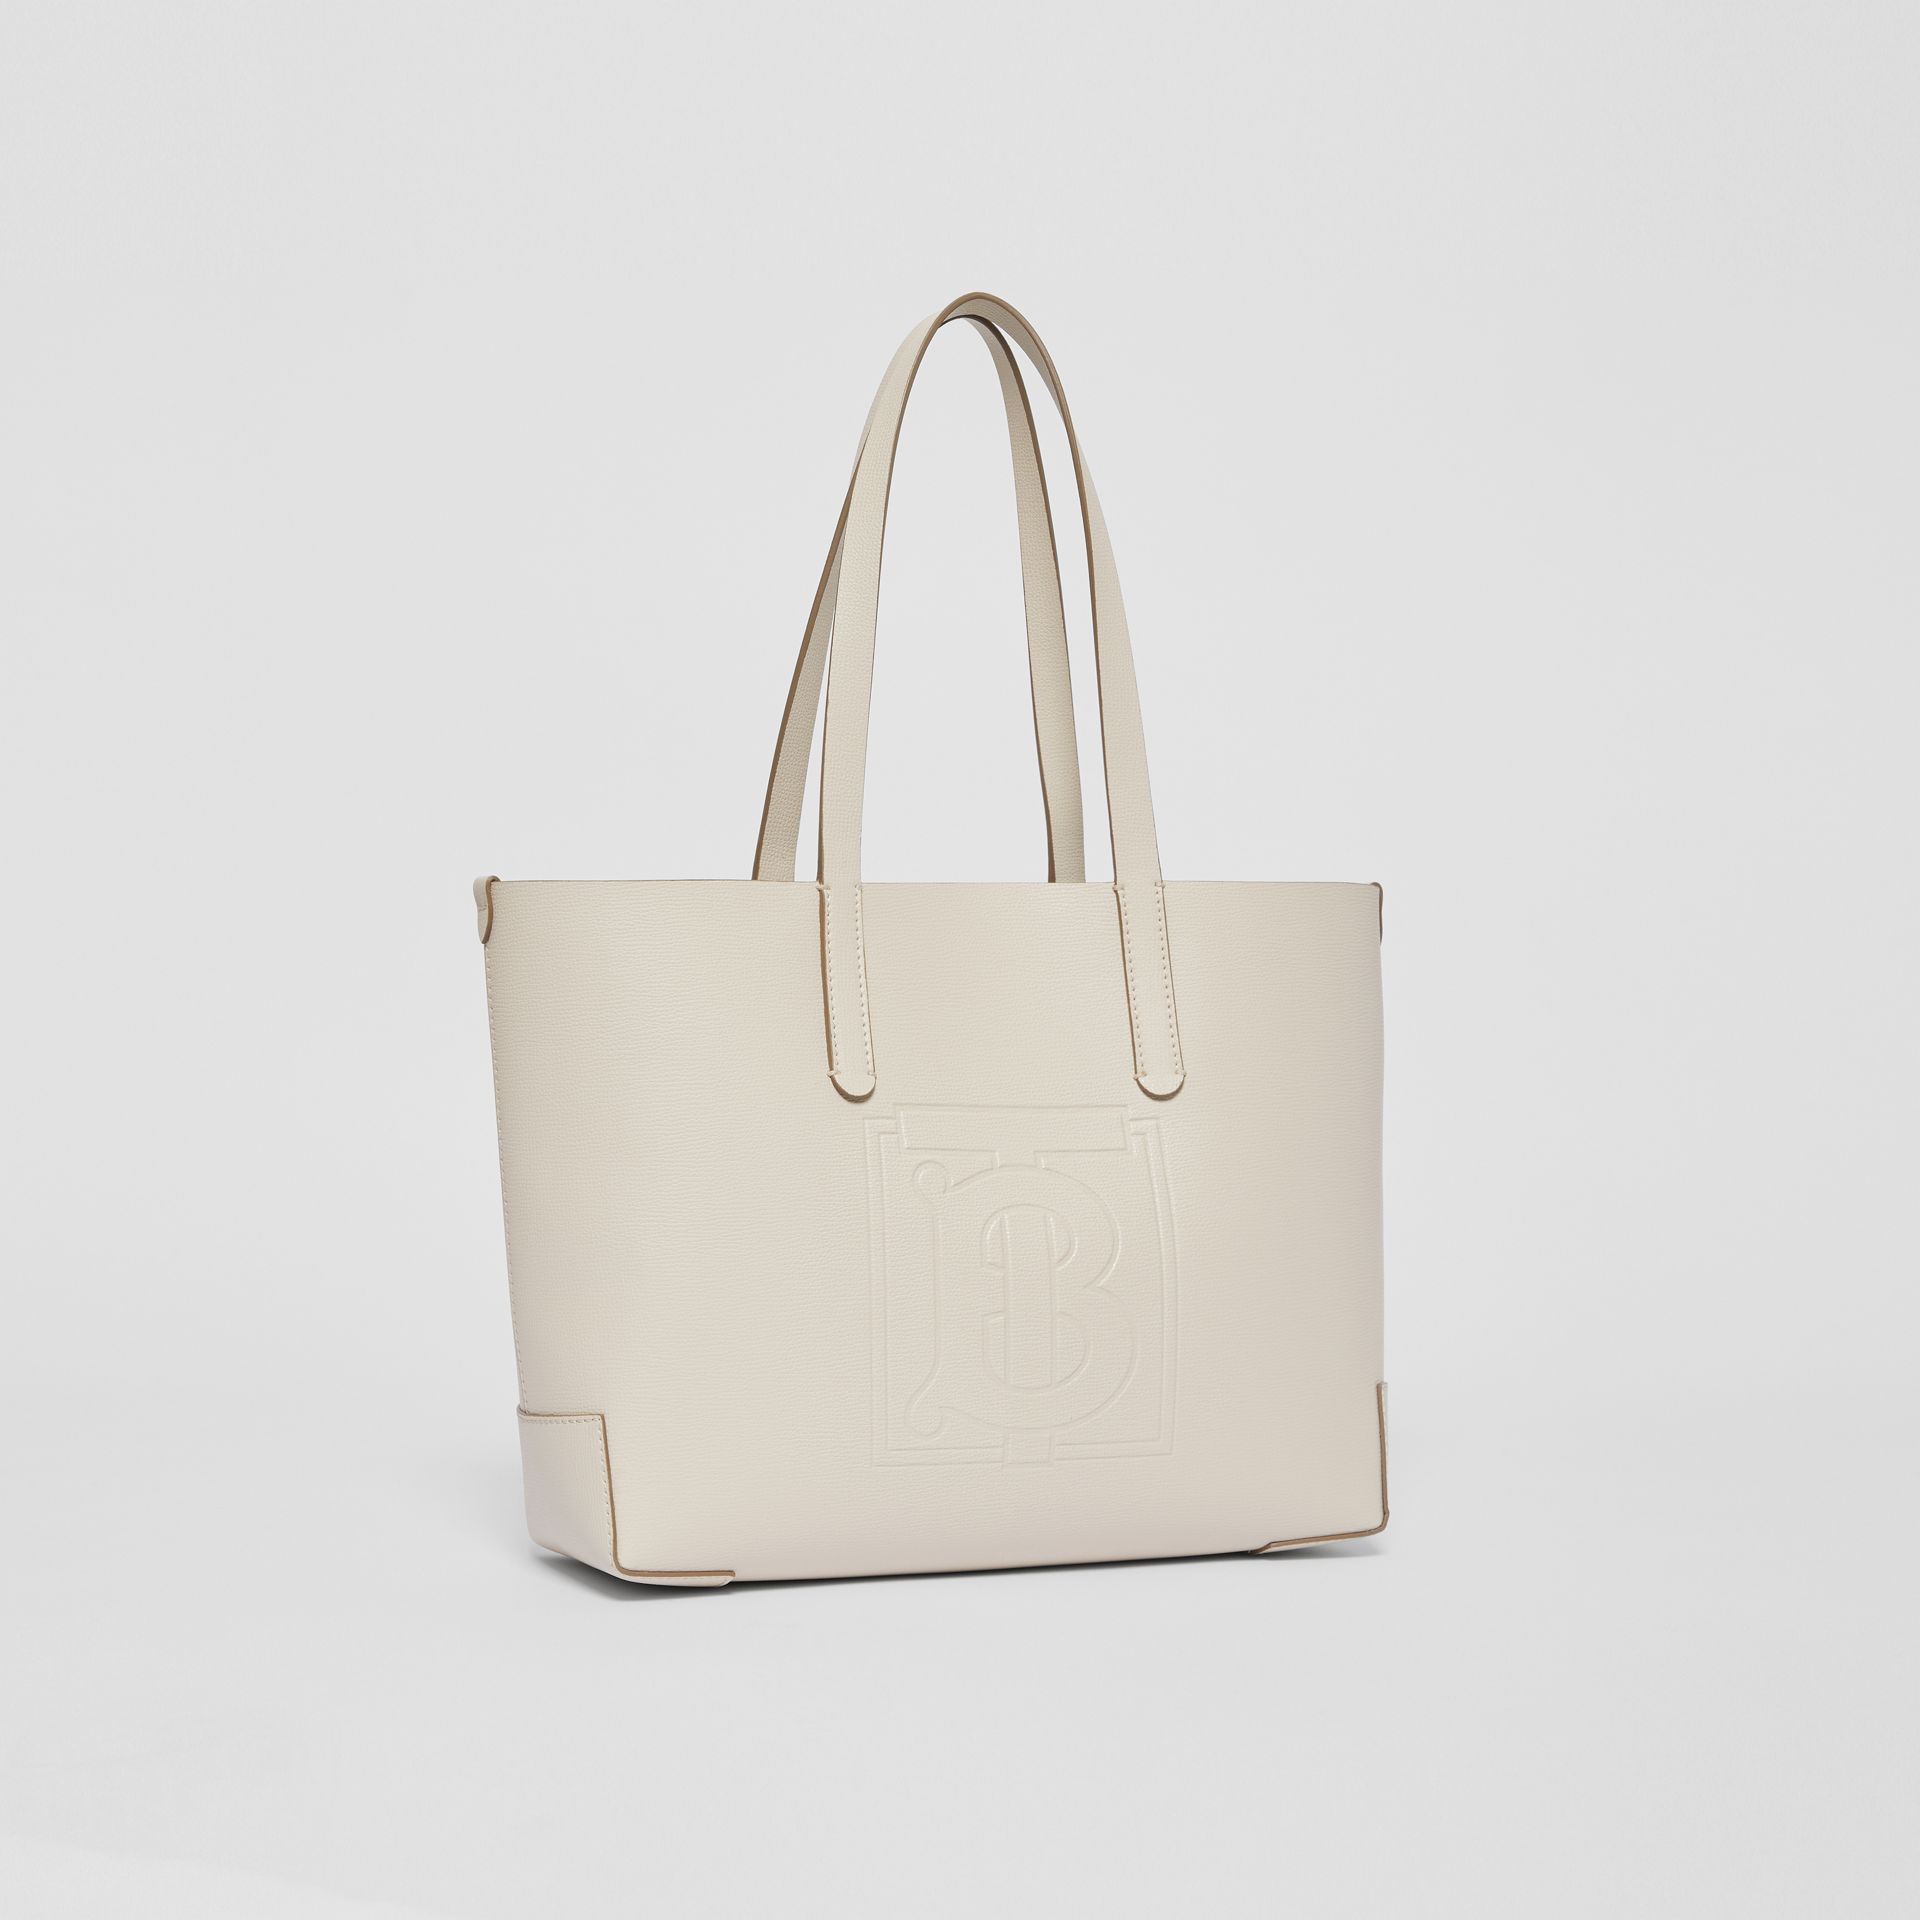 Embossed Monogram Motif Leather Tote in Limestone - Women | Burberry Australia - gallery image 6